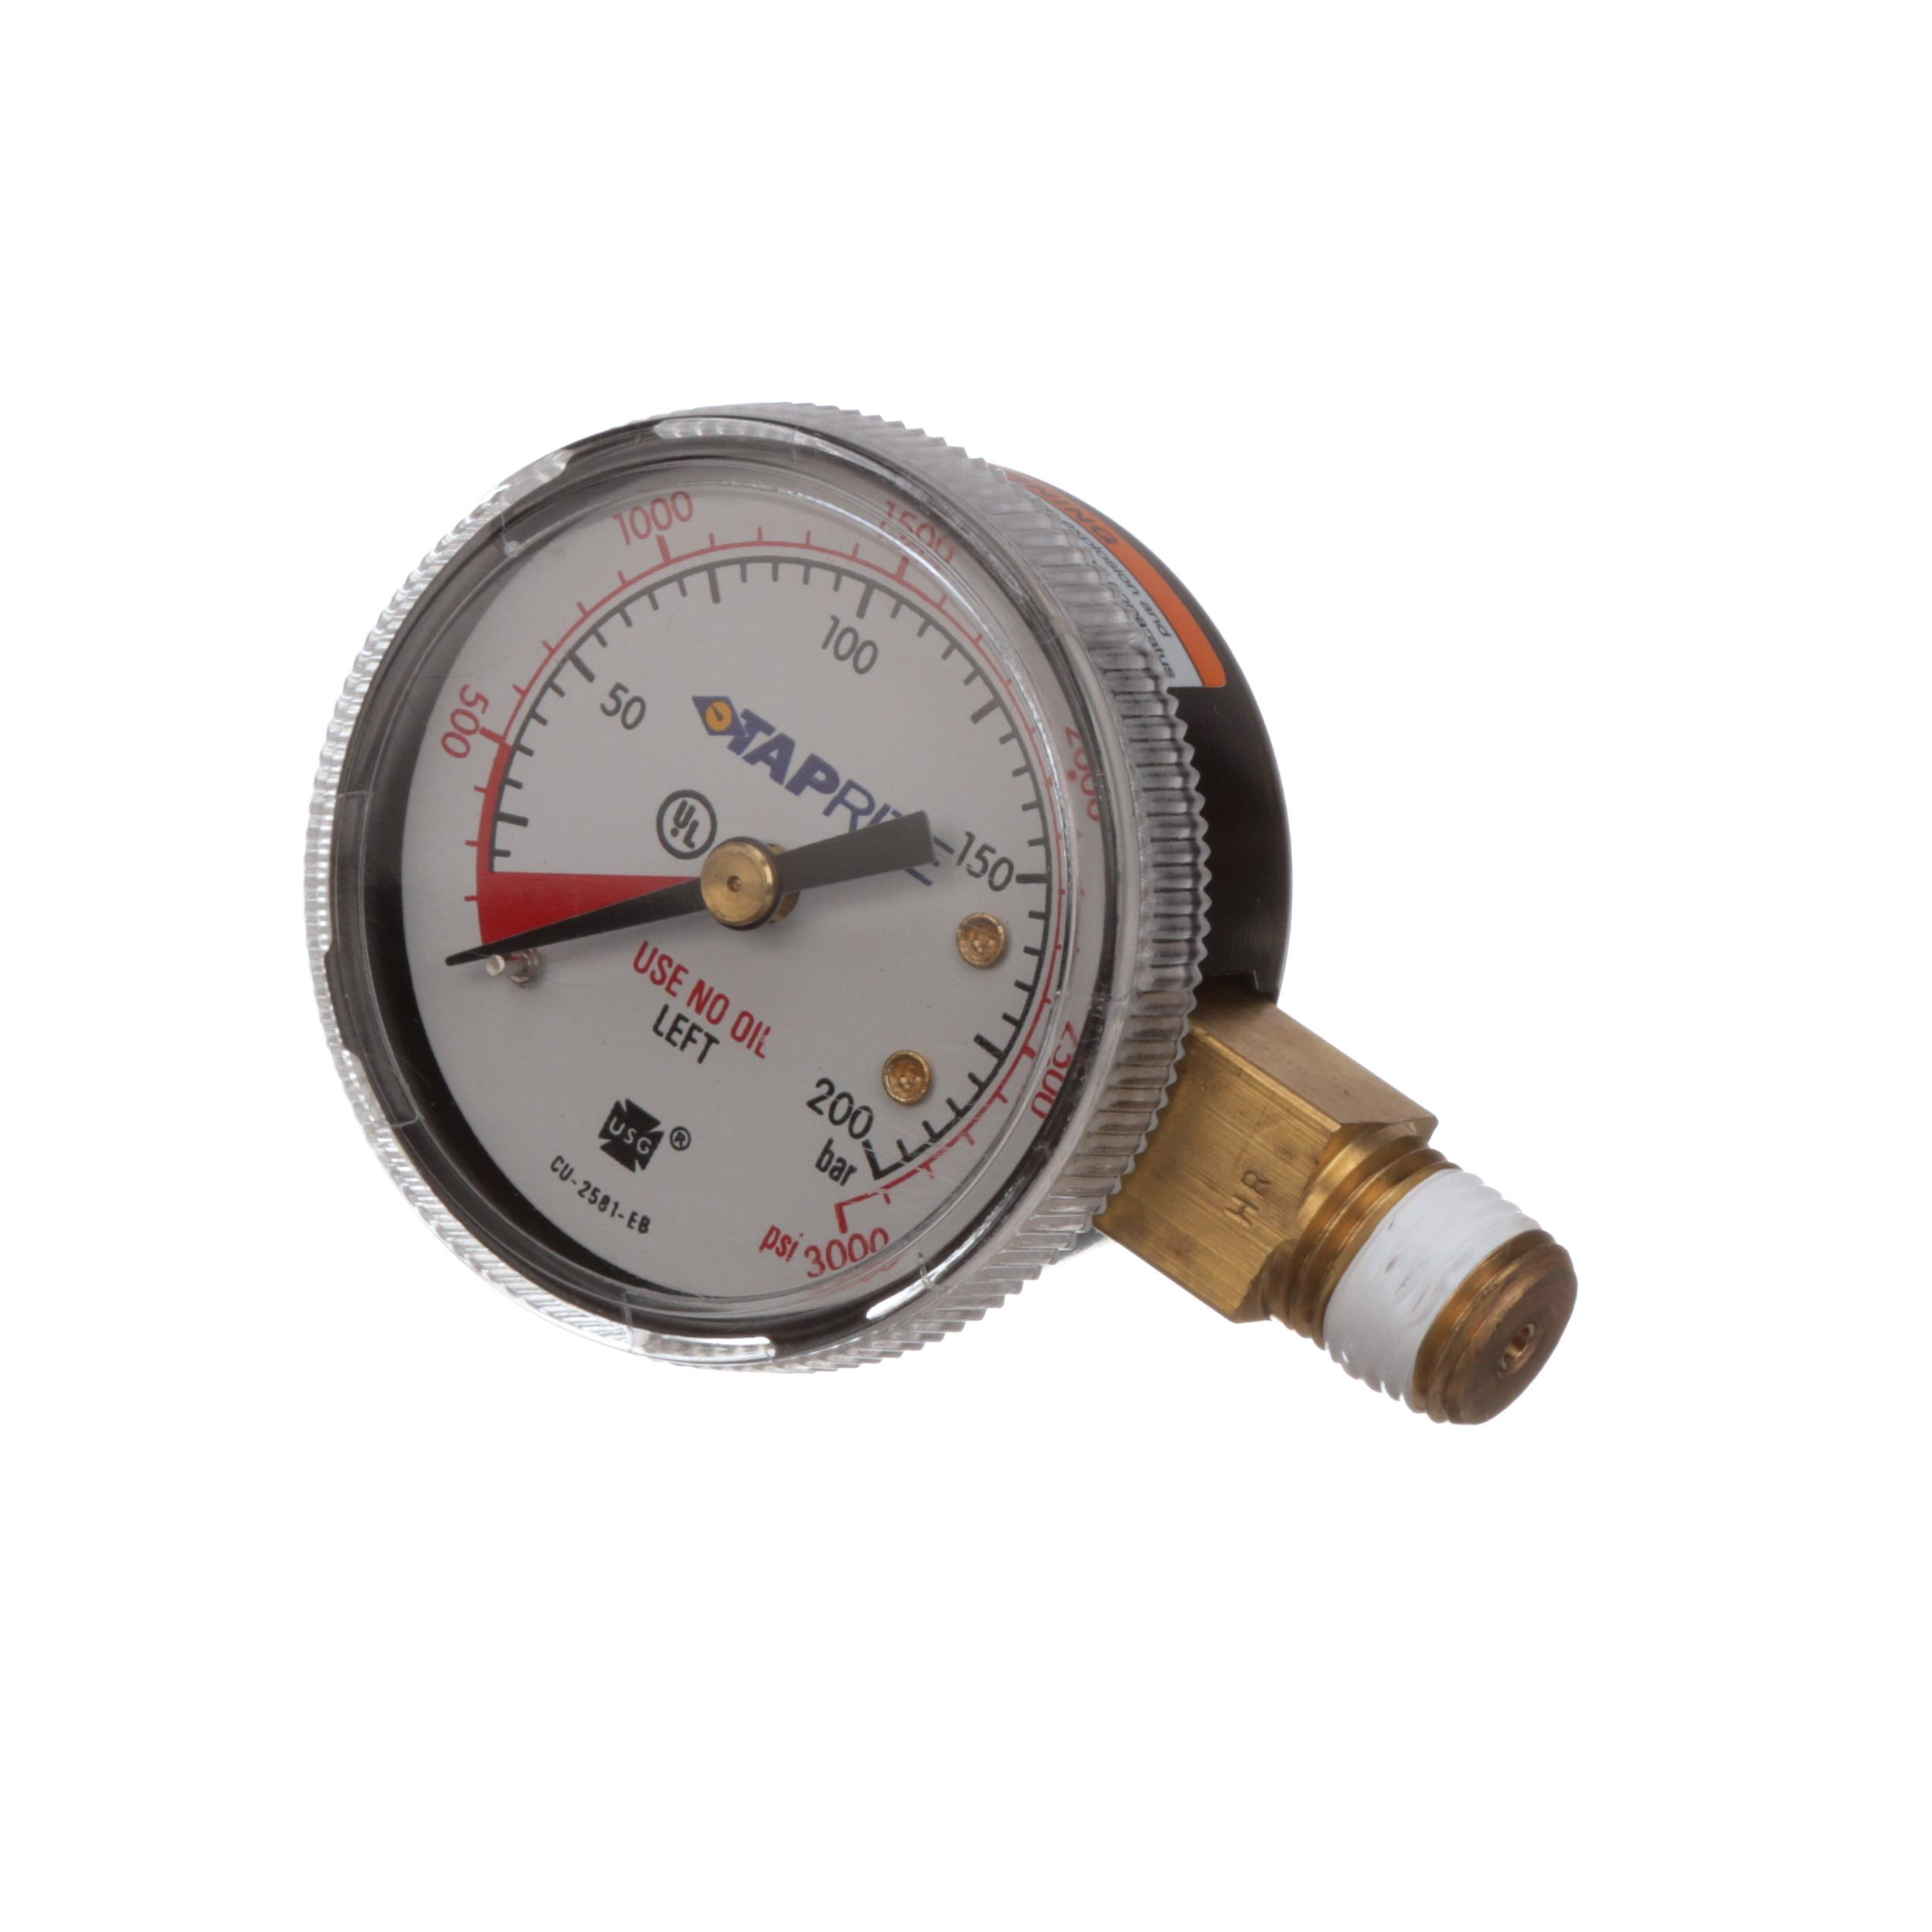 MANITOWOC GAUGE LEFT HAND 0 TO 3000 PSI